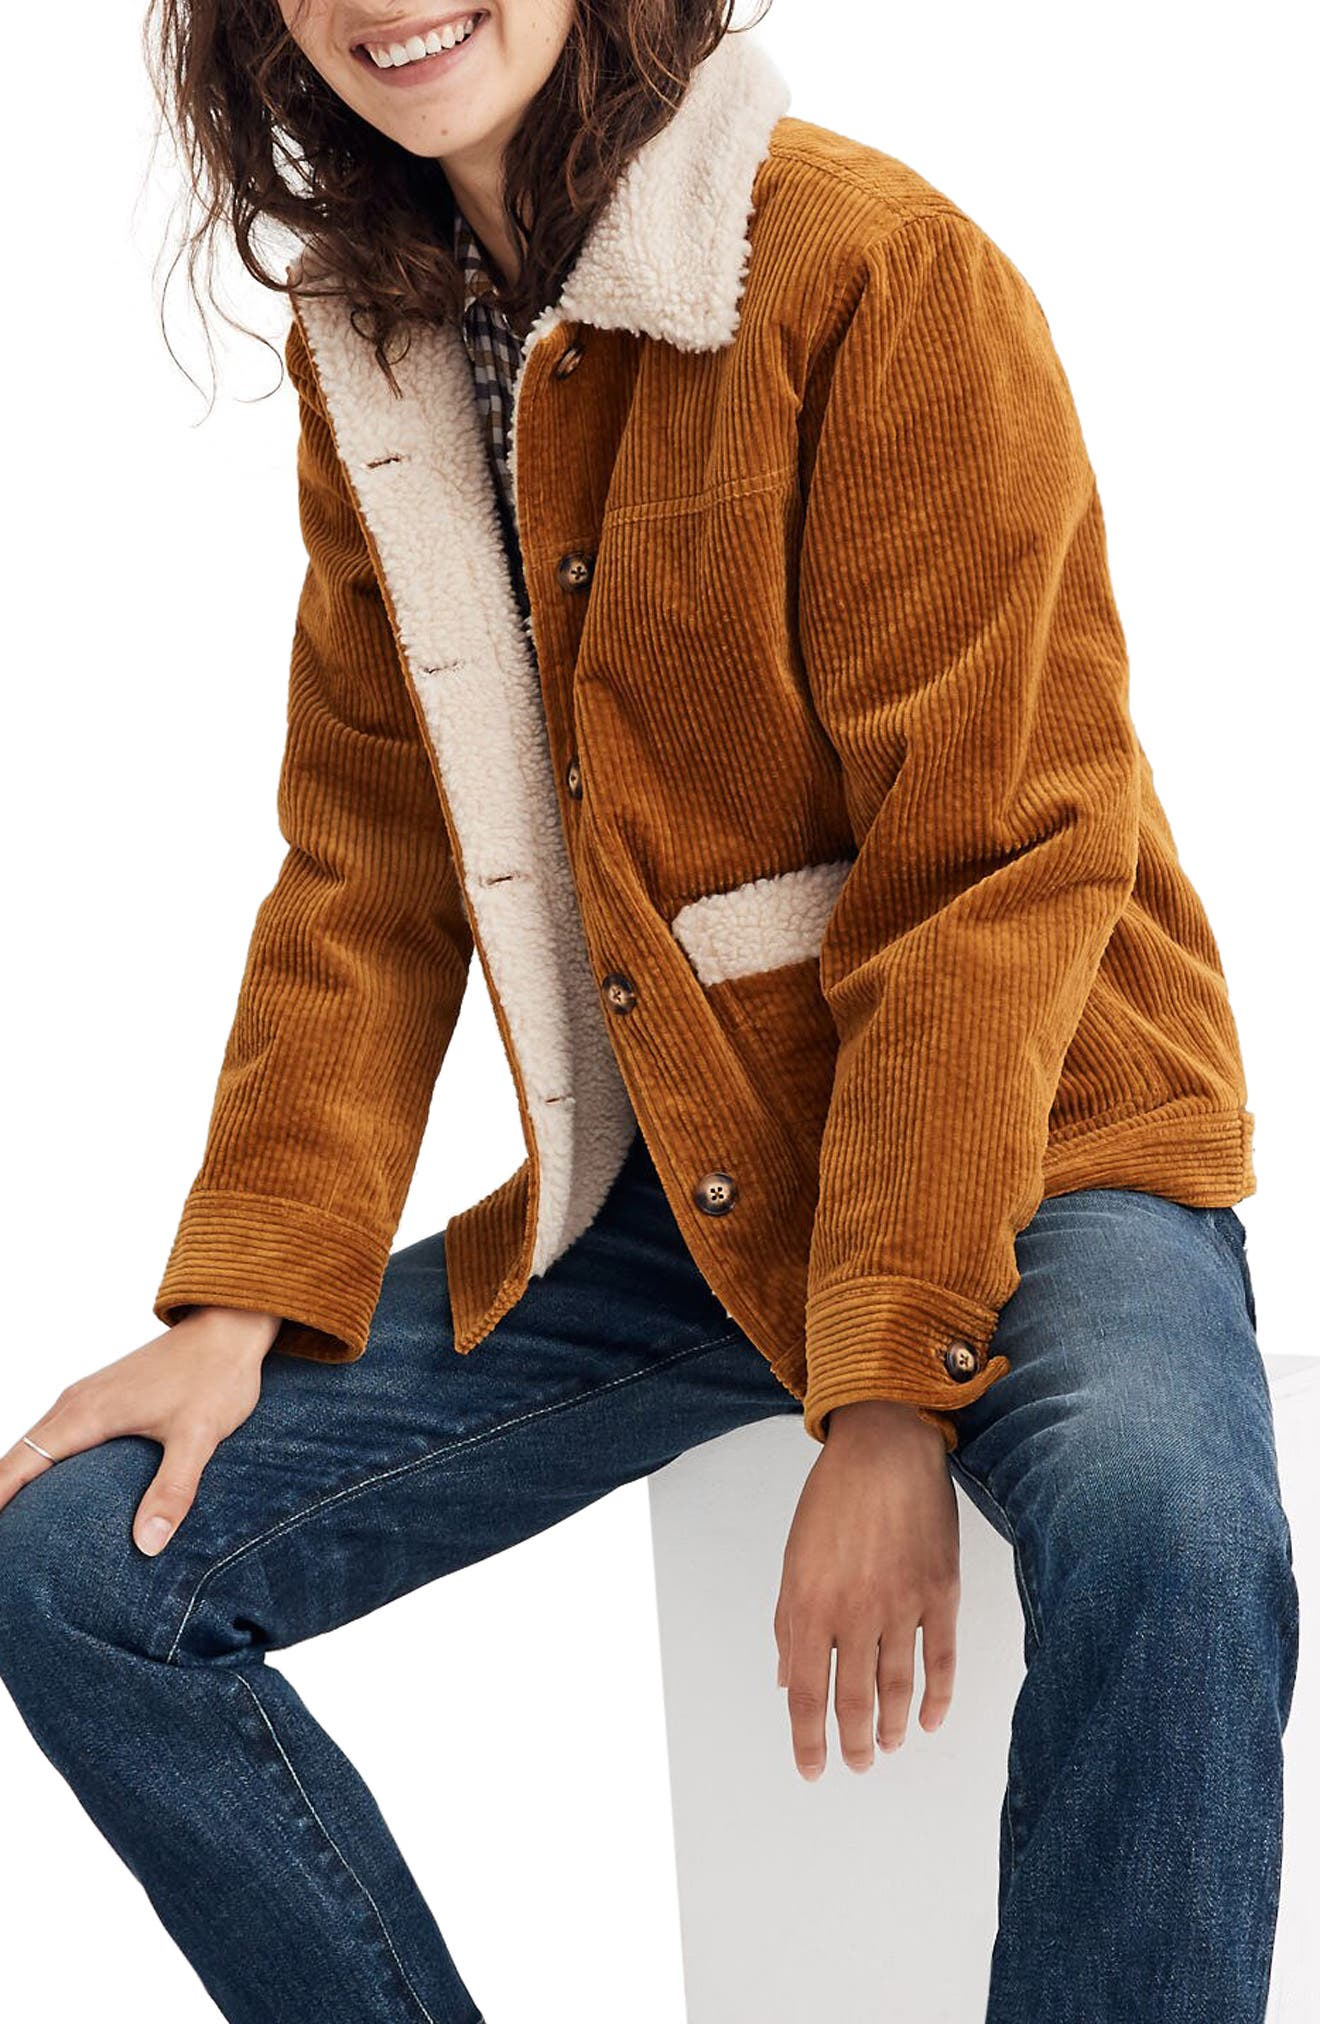 70s Jackets & Hippie Vests, Ponchos Womens Madewell Faux Shearling Lined Corduroy Swing Chore Coat $168.00 AT vintagedancer.com